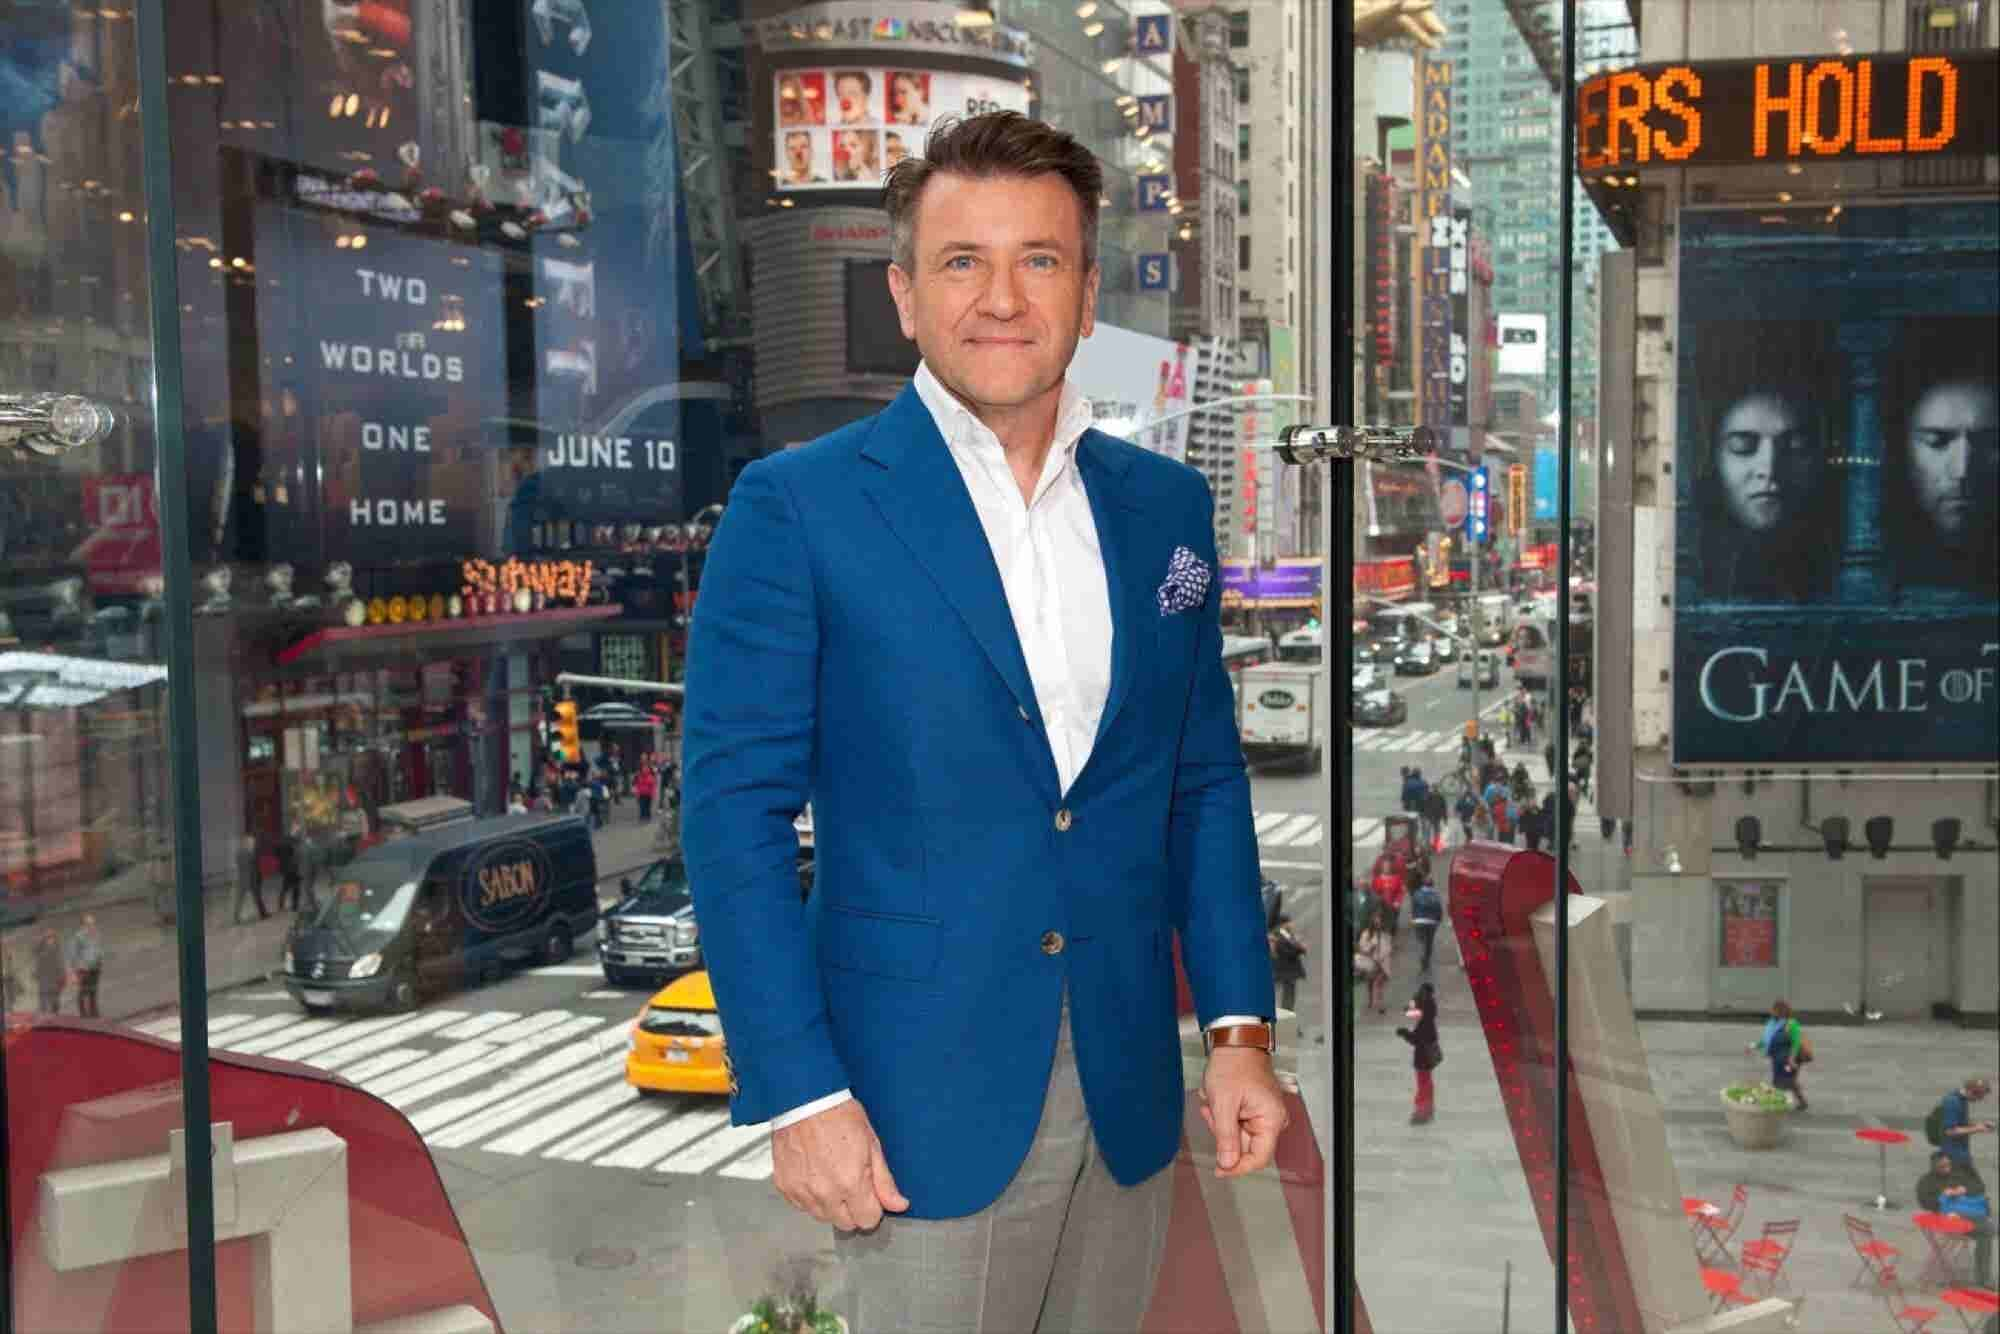 Robert Herjavec to Immigrant Entrepreneurs: 'People Don't Care About Your Color, Religion or Sex. They Care About the Value You Add.'